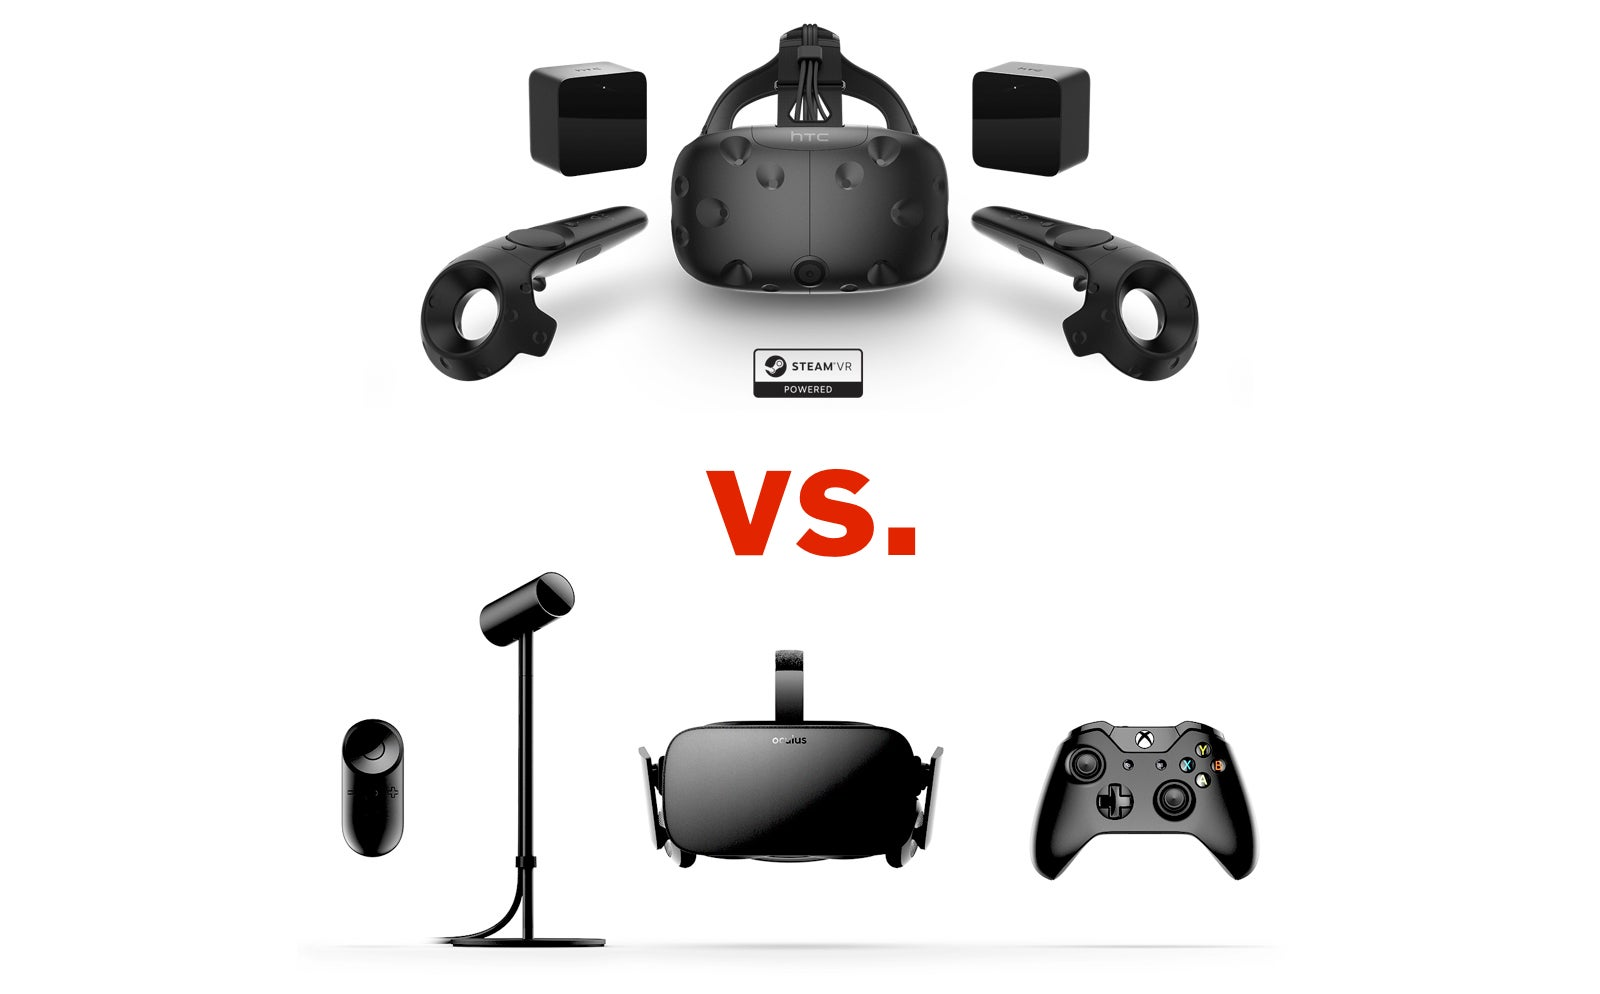 Oculus Rift Vs HTC Vive: Which Should You Pre-order?